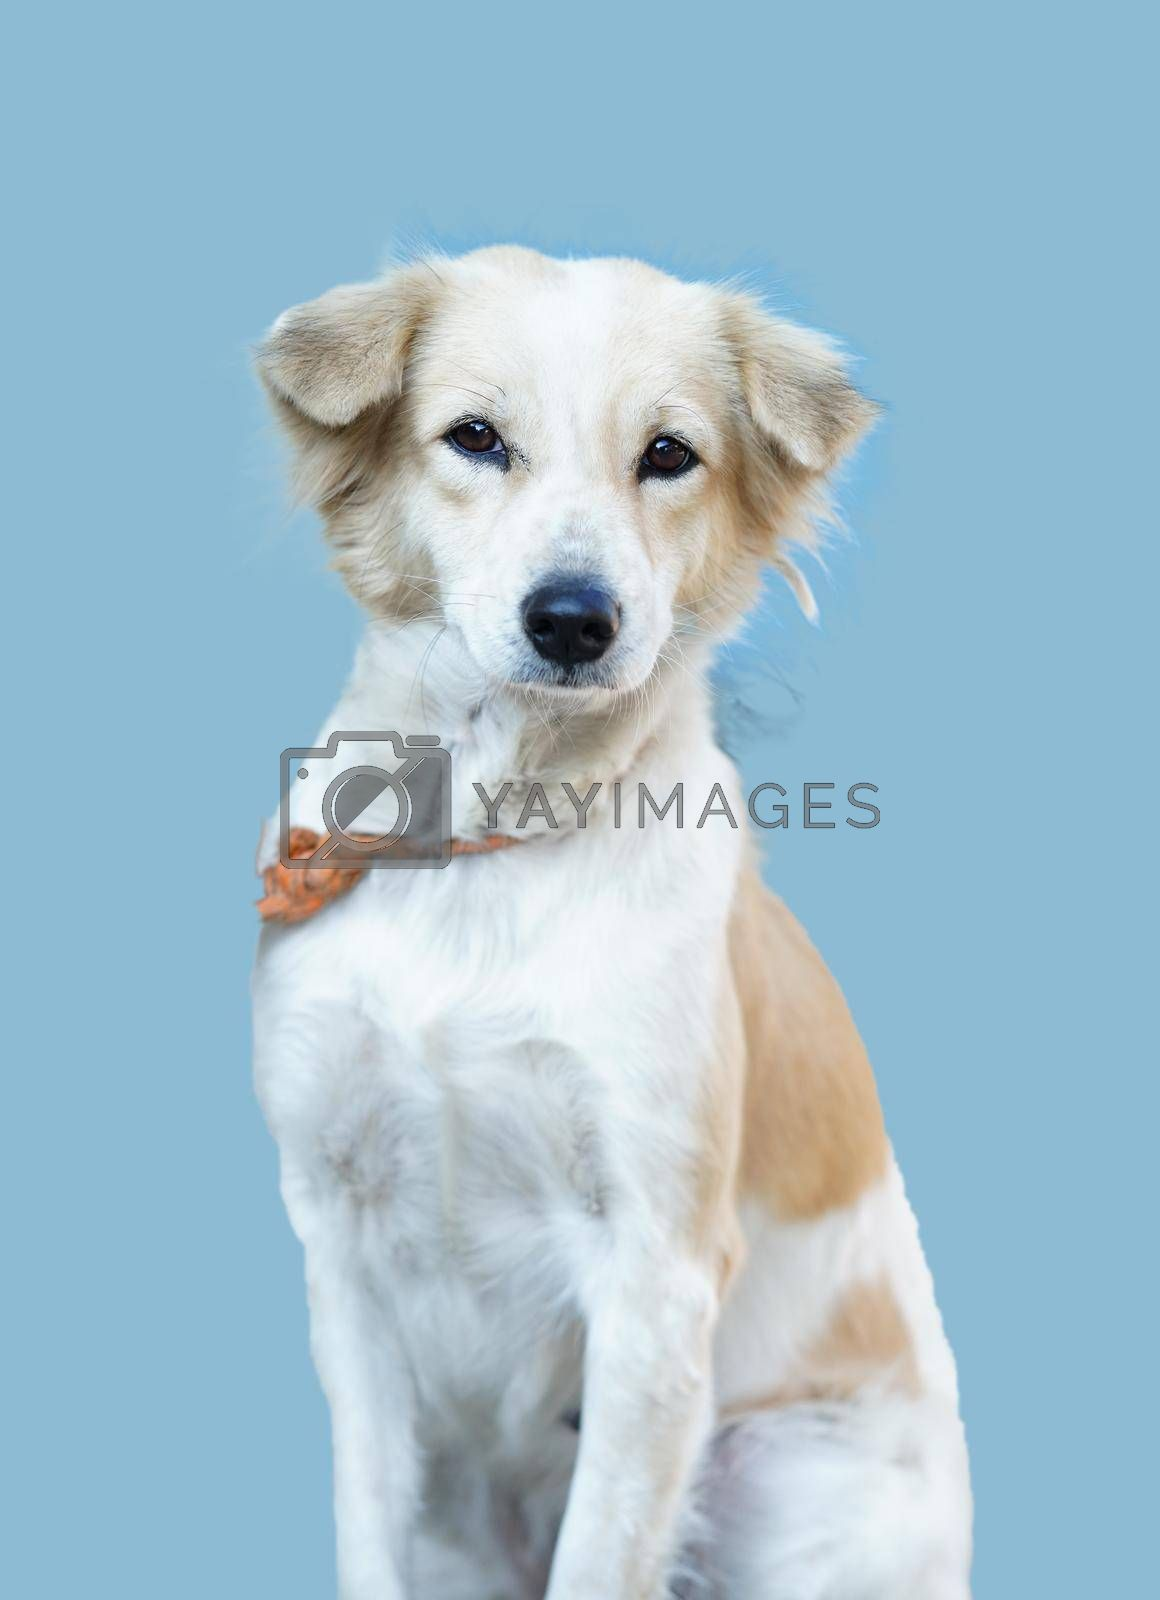 A portrait of a white dog looking at the camera isolated on a blue background.